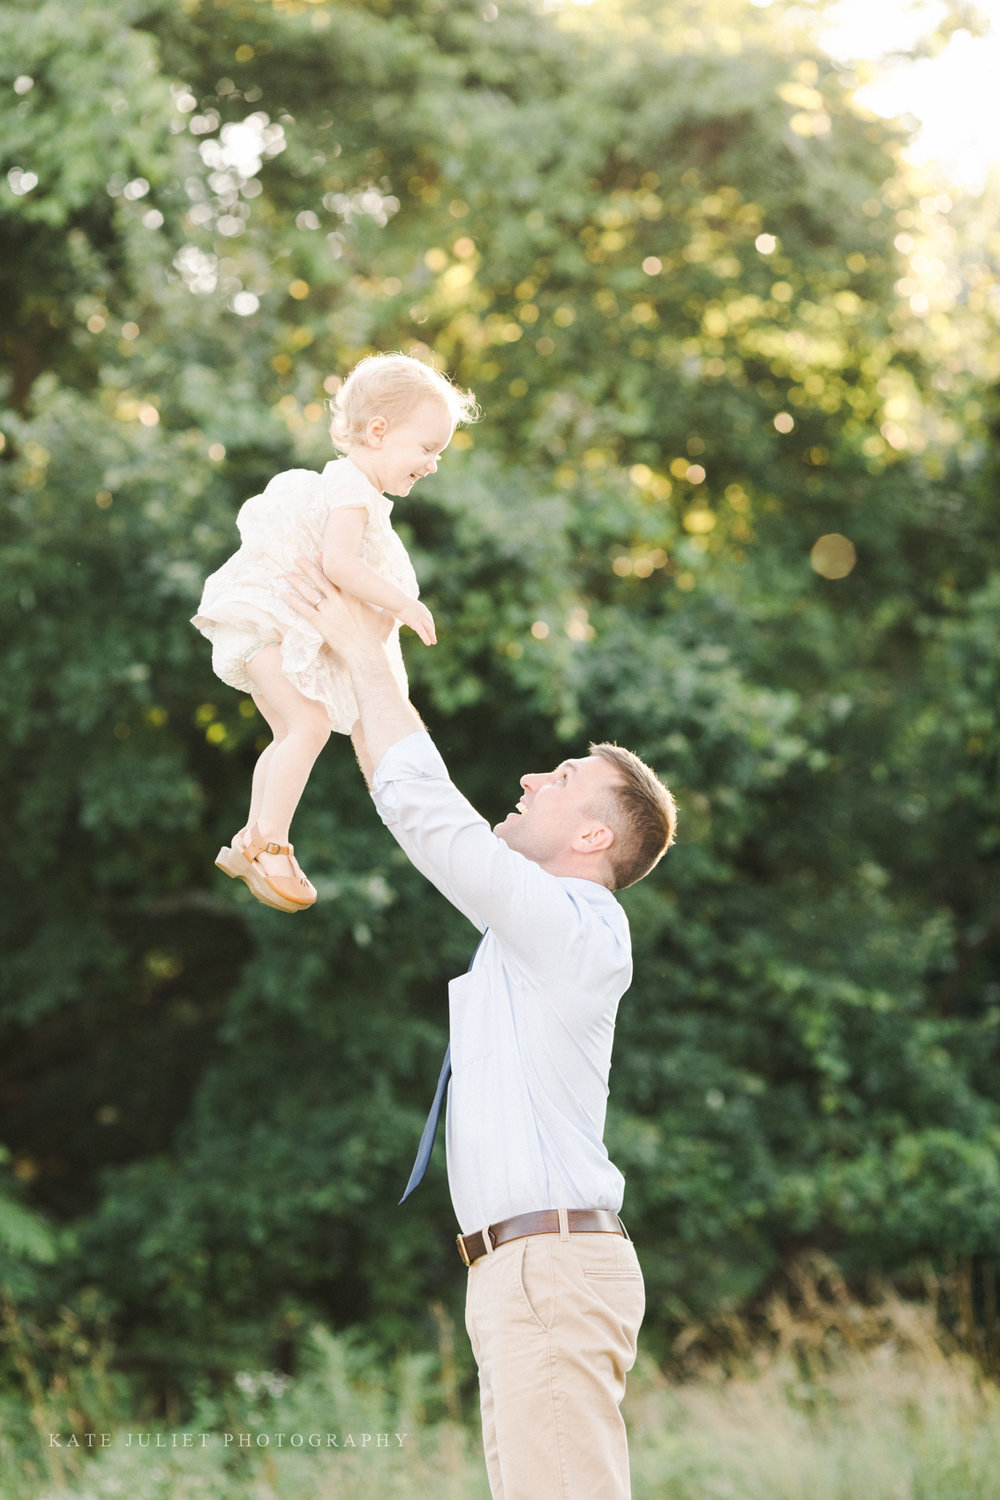 kate_juliet_photography-family-web-9.jpg